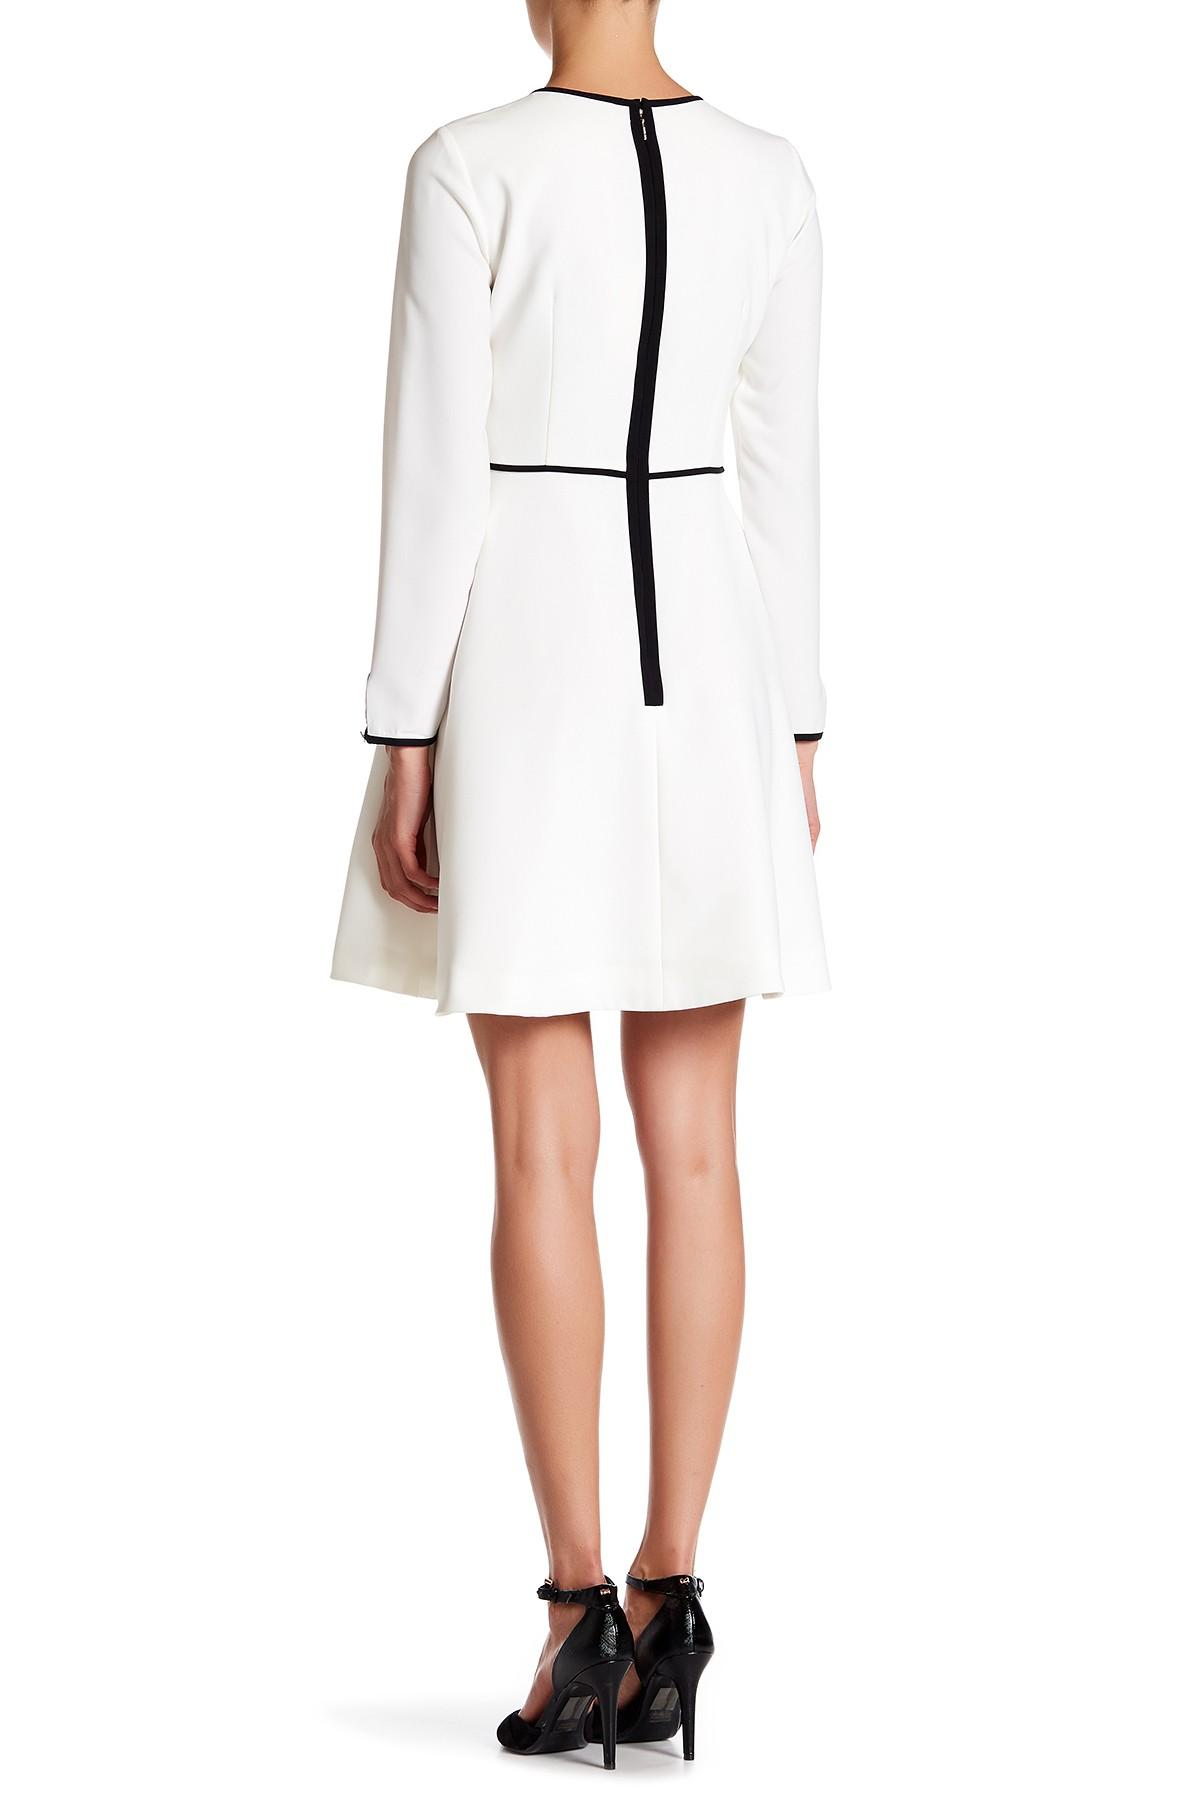 e39816be2b3882 Lyst - Ted Baker Loozy Long Sleeve Bow Tie Dress in White